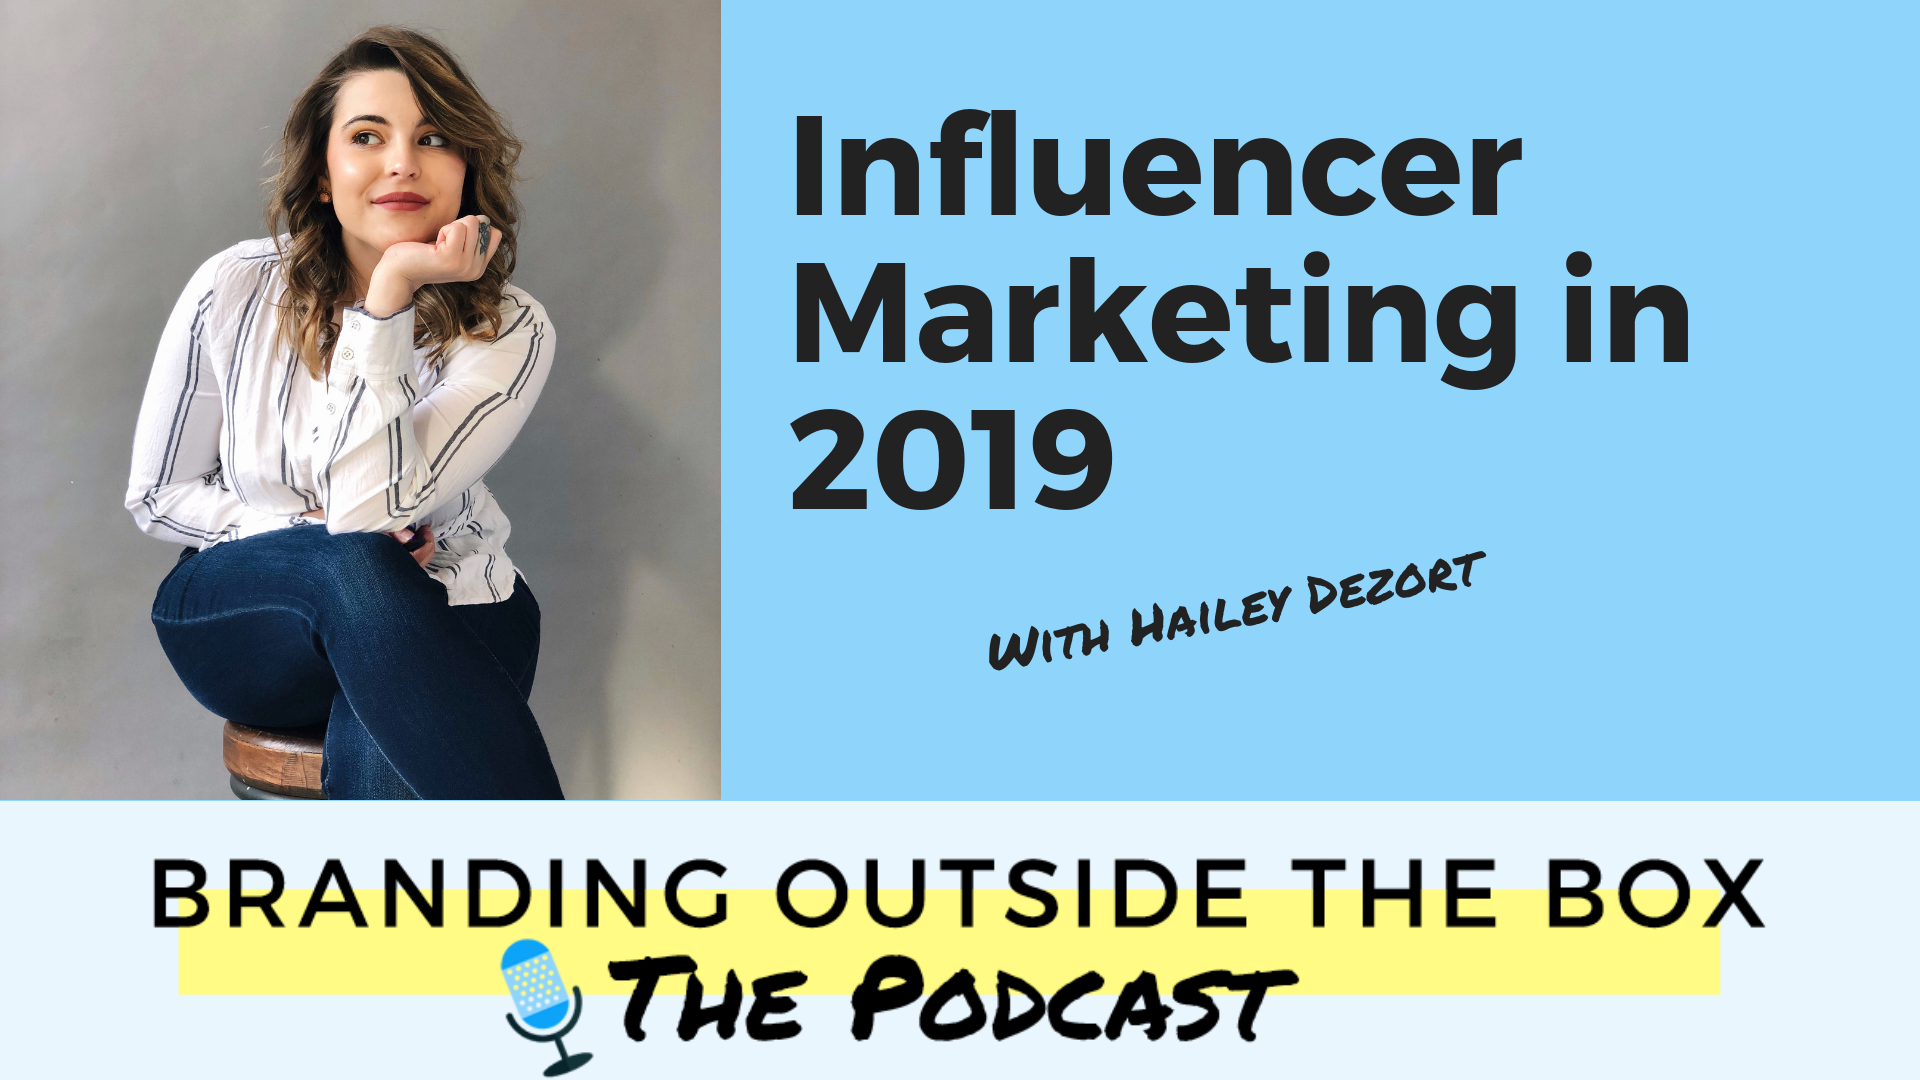 Influencer Marketing in 2019